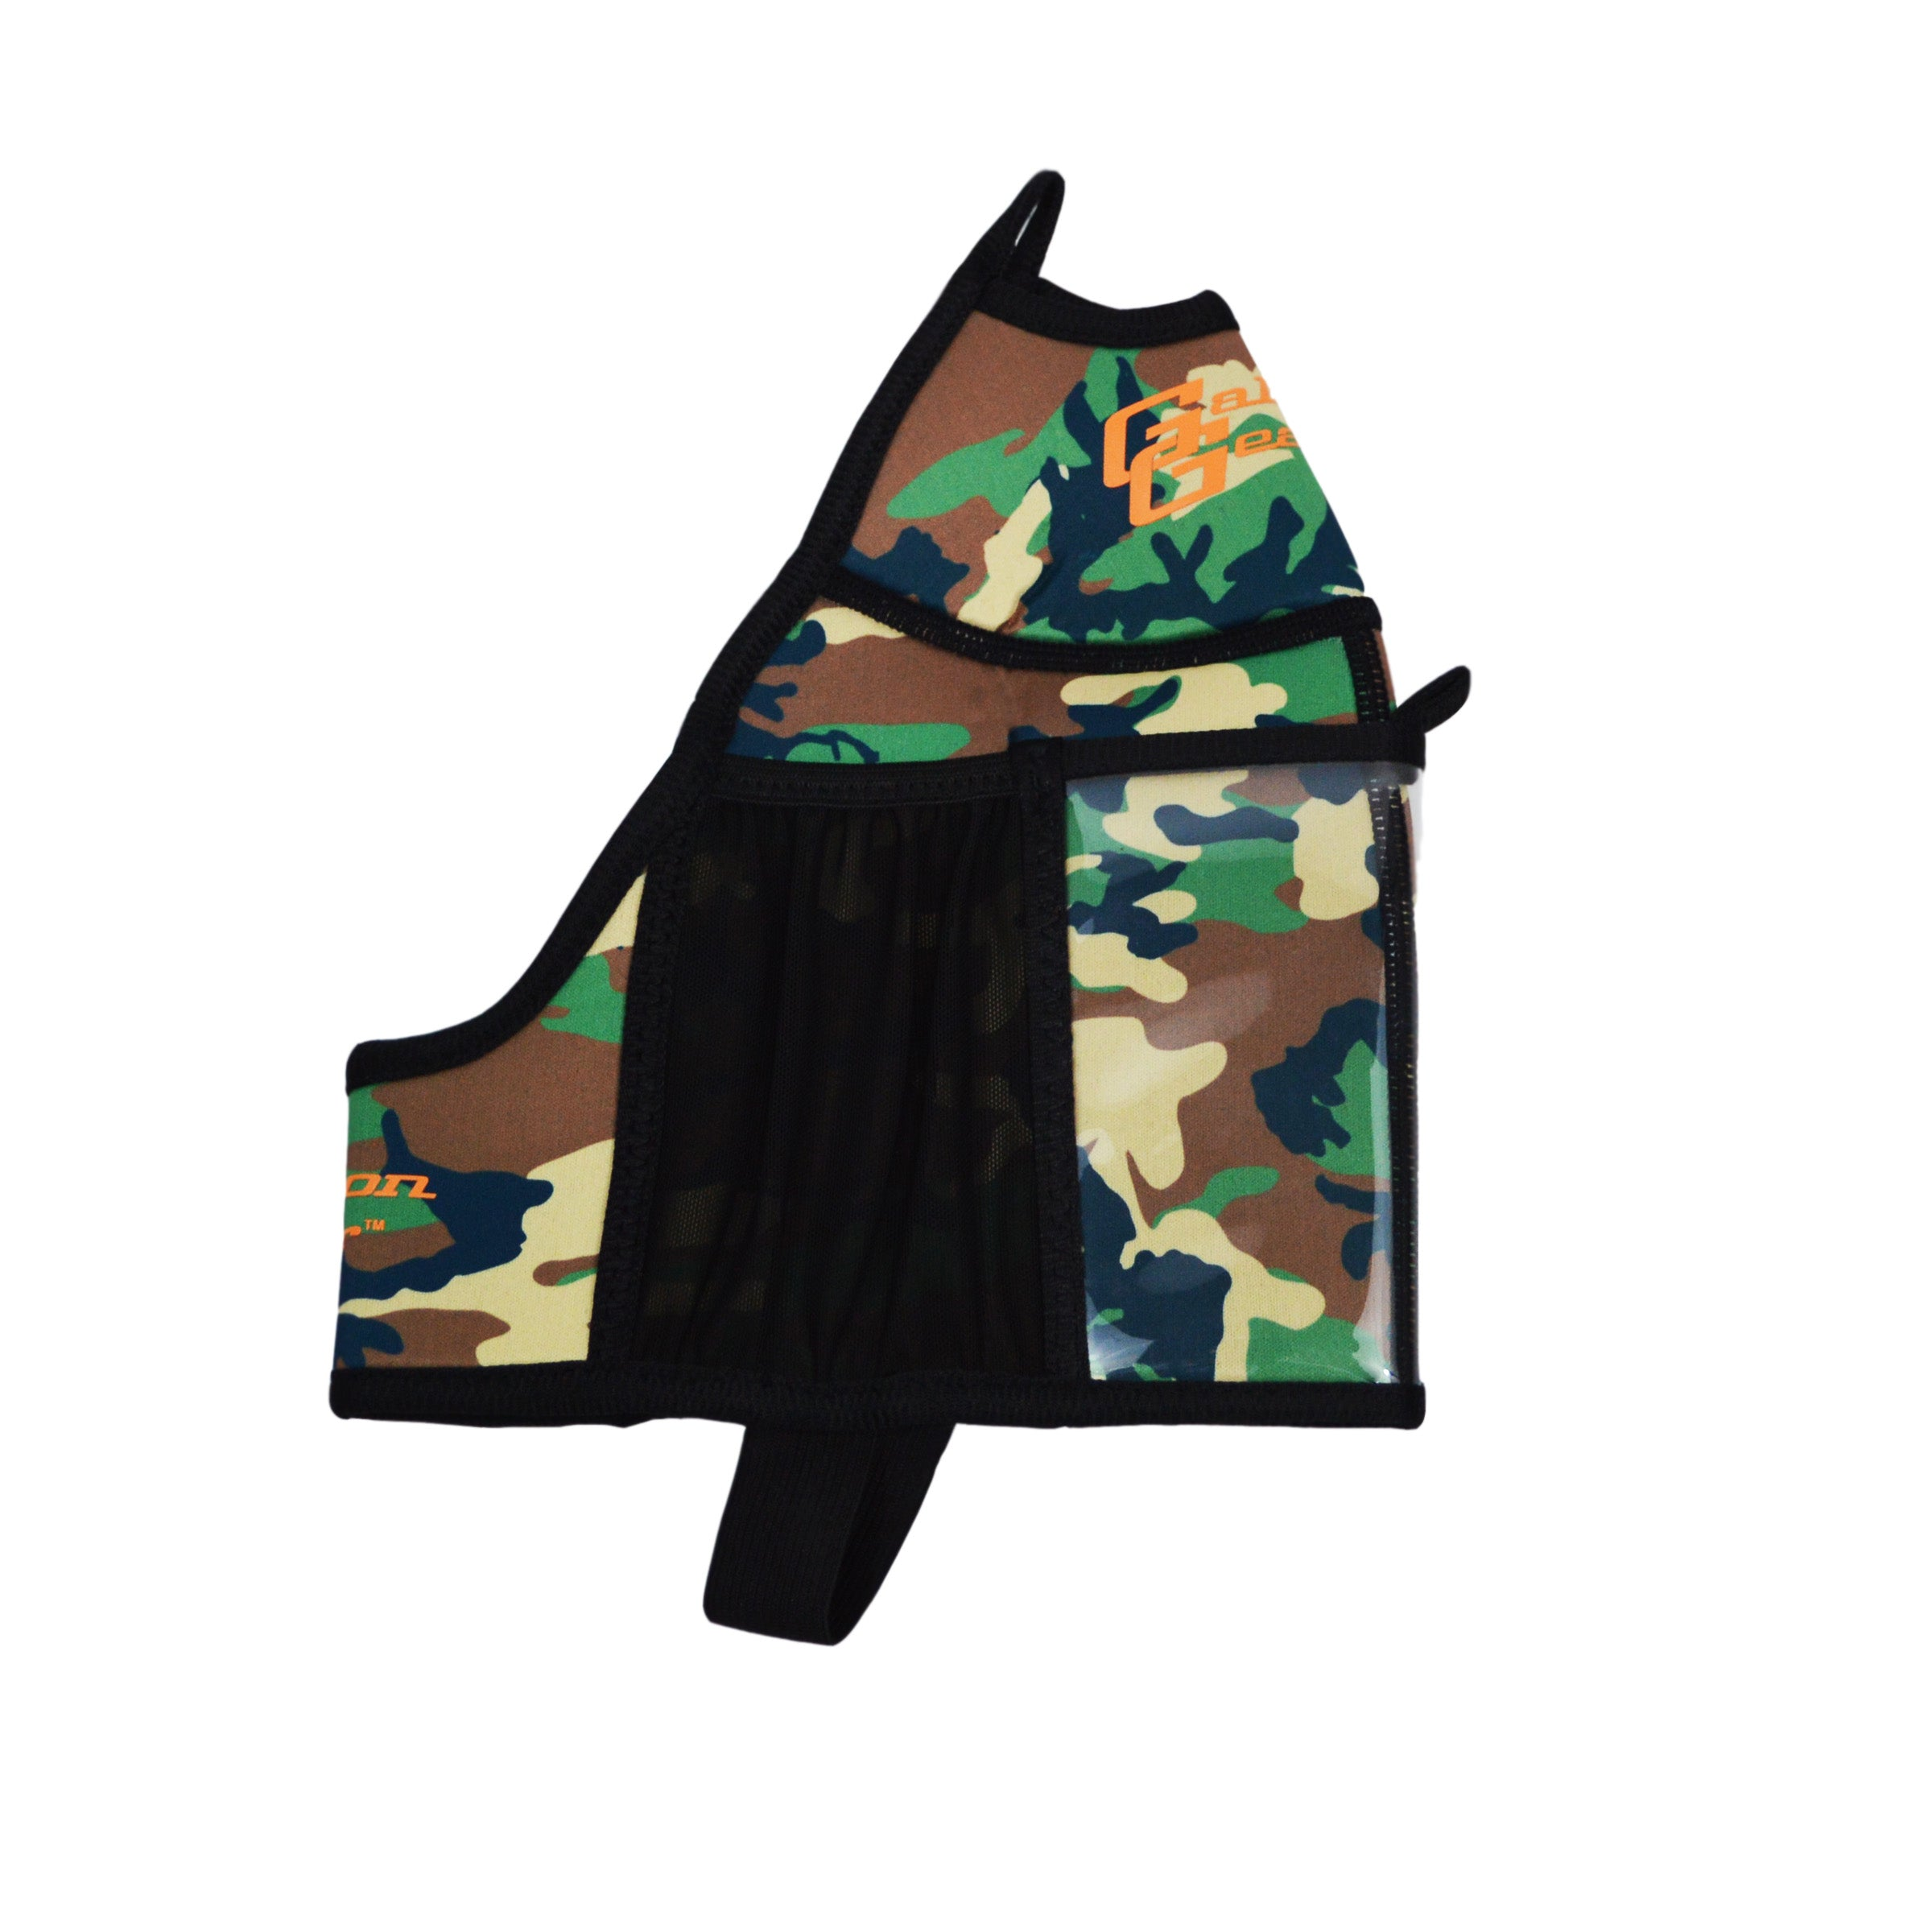 Green Camo Half Gallon Gear Fitness Hydration Cover